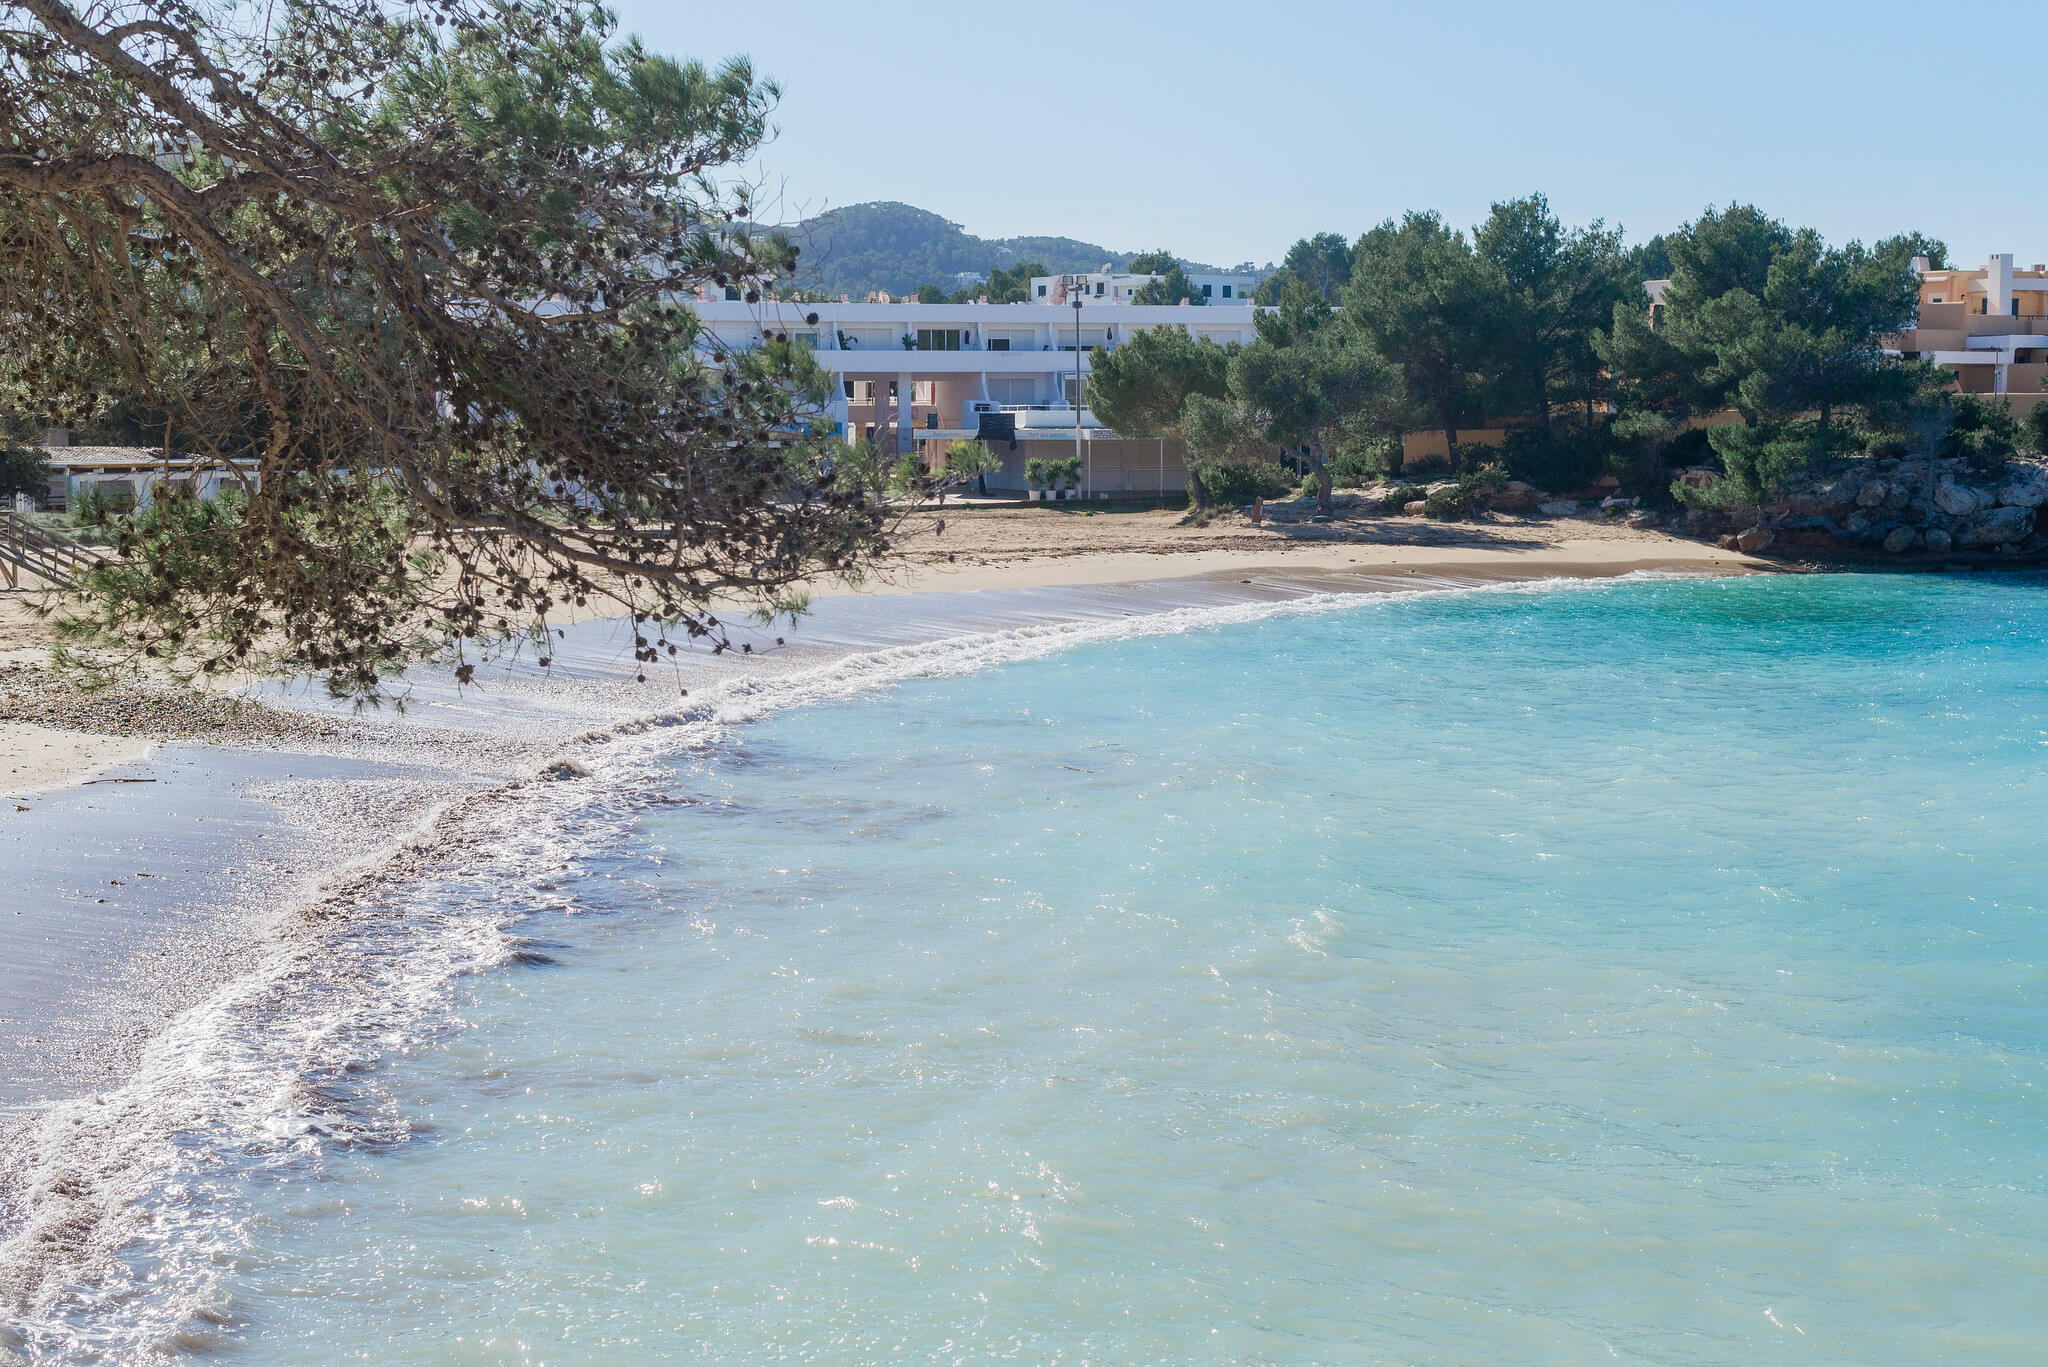 https://www.white-ibiza.com/wp-content/uploads/2020/03/ibiza-beaches-port-des-torrent-01.jpg